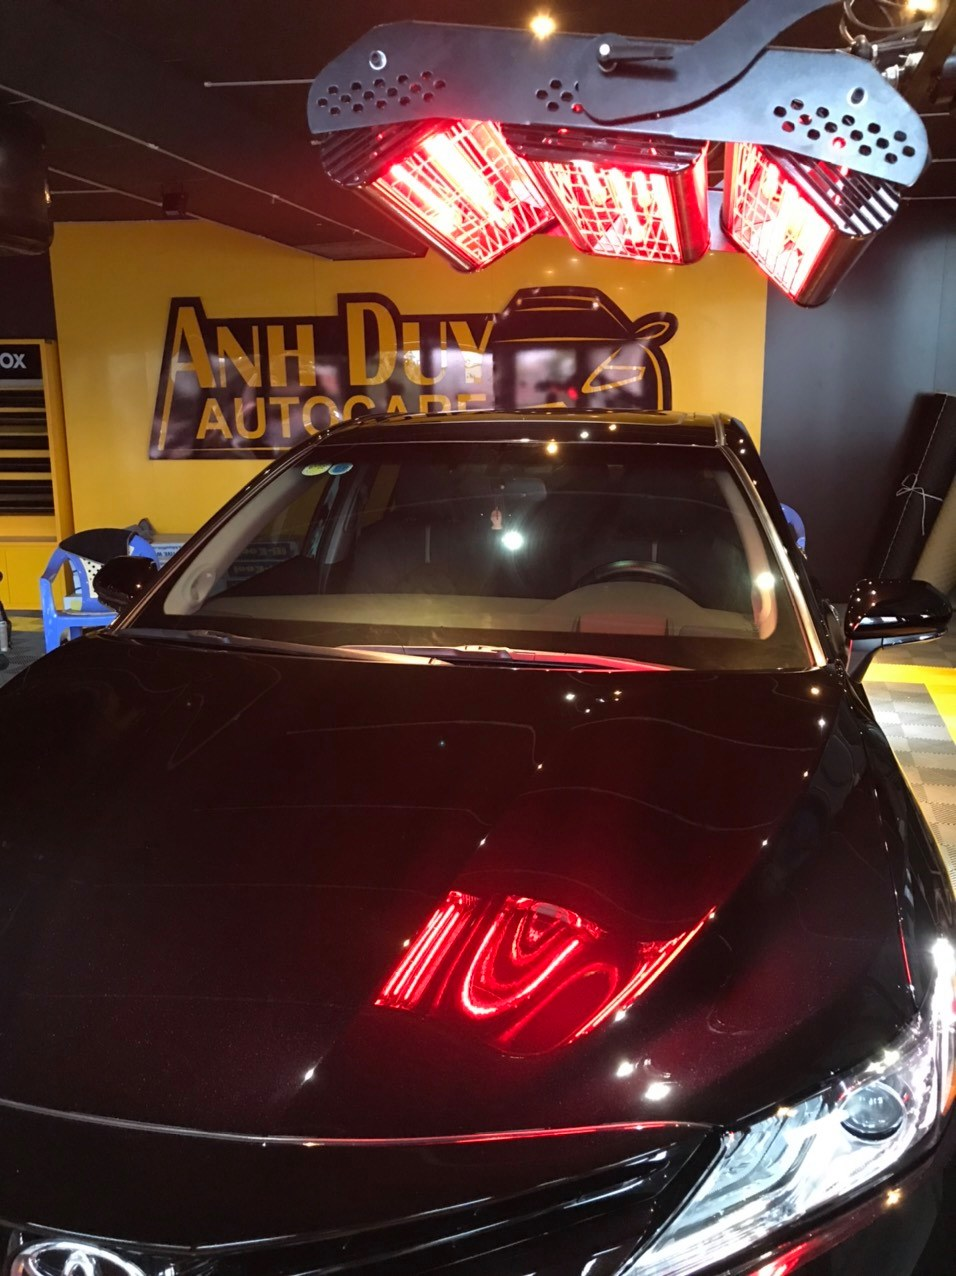 phu-ceramic-anh-duy-autocare-my-tho-5